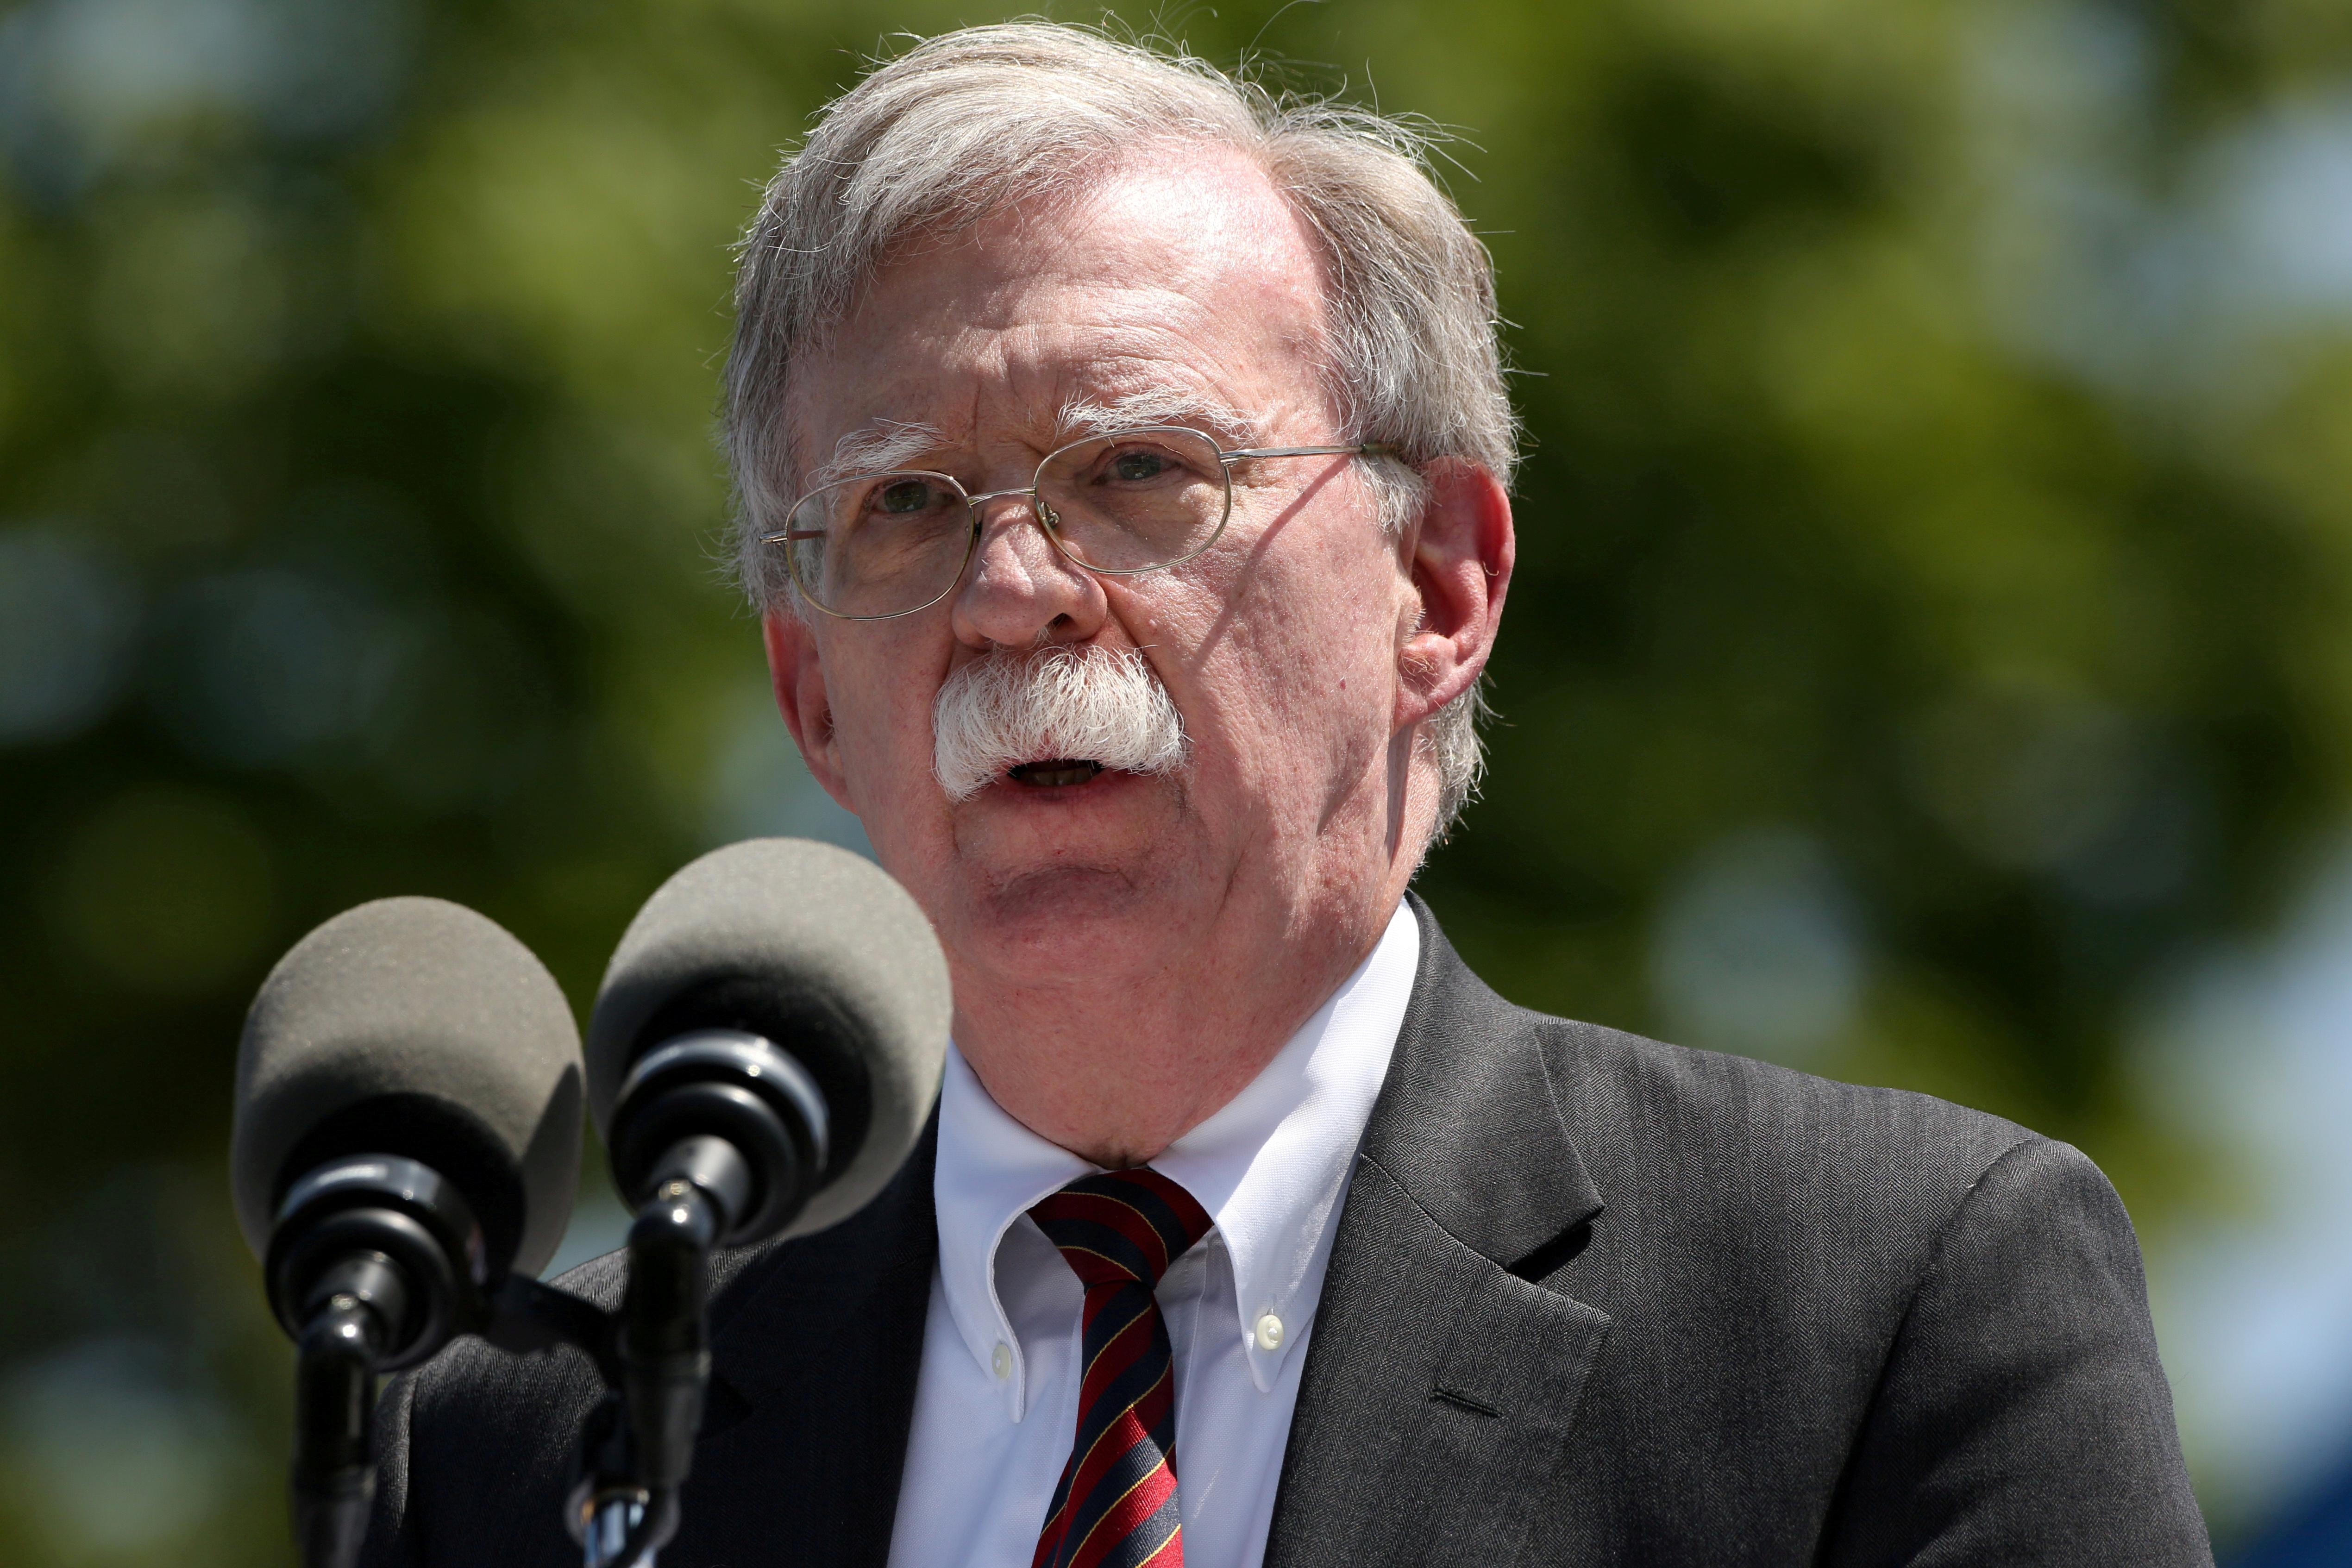 With Bolton's departure, an Iran hawk leaves the chessboard